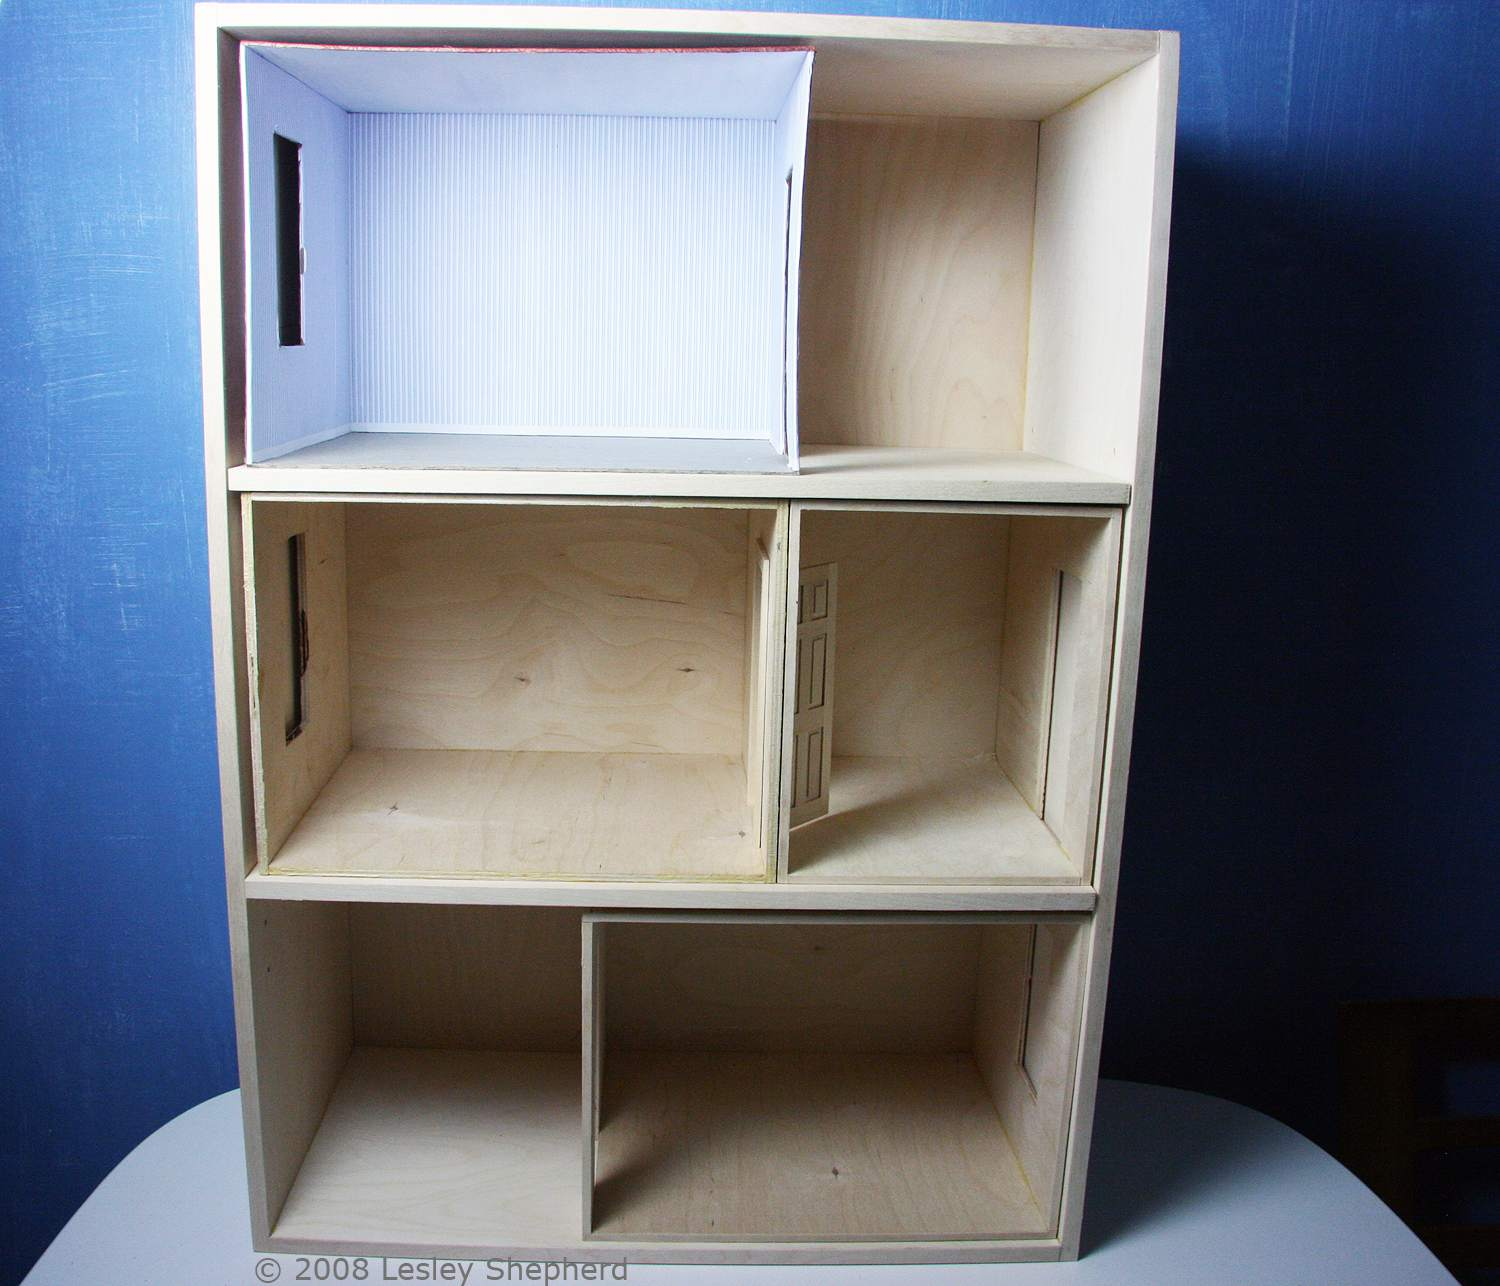 Build A Front Opening Doll House Or Dollhouse Bookcase Dolls Wiring Completed Baby Case With Two Adjustable Shelves Holds Collection Of Unfinished Roomboxes